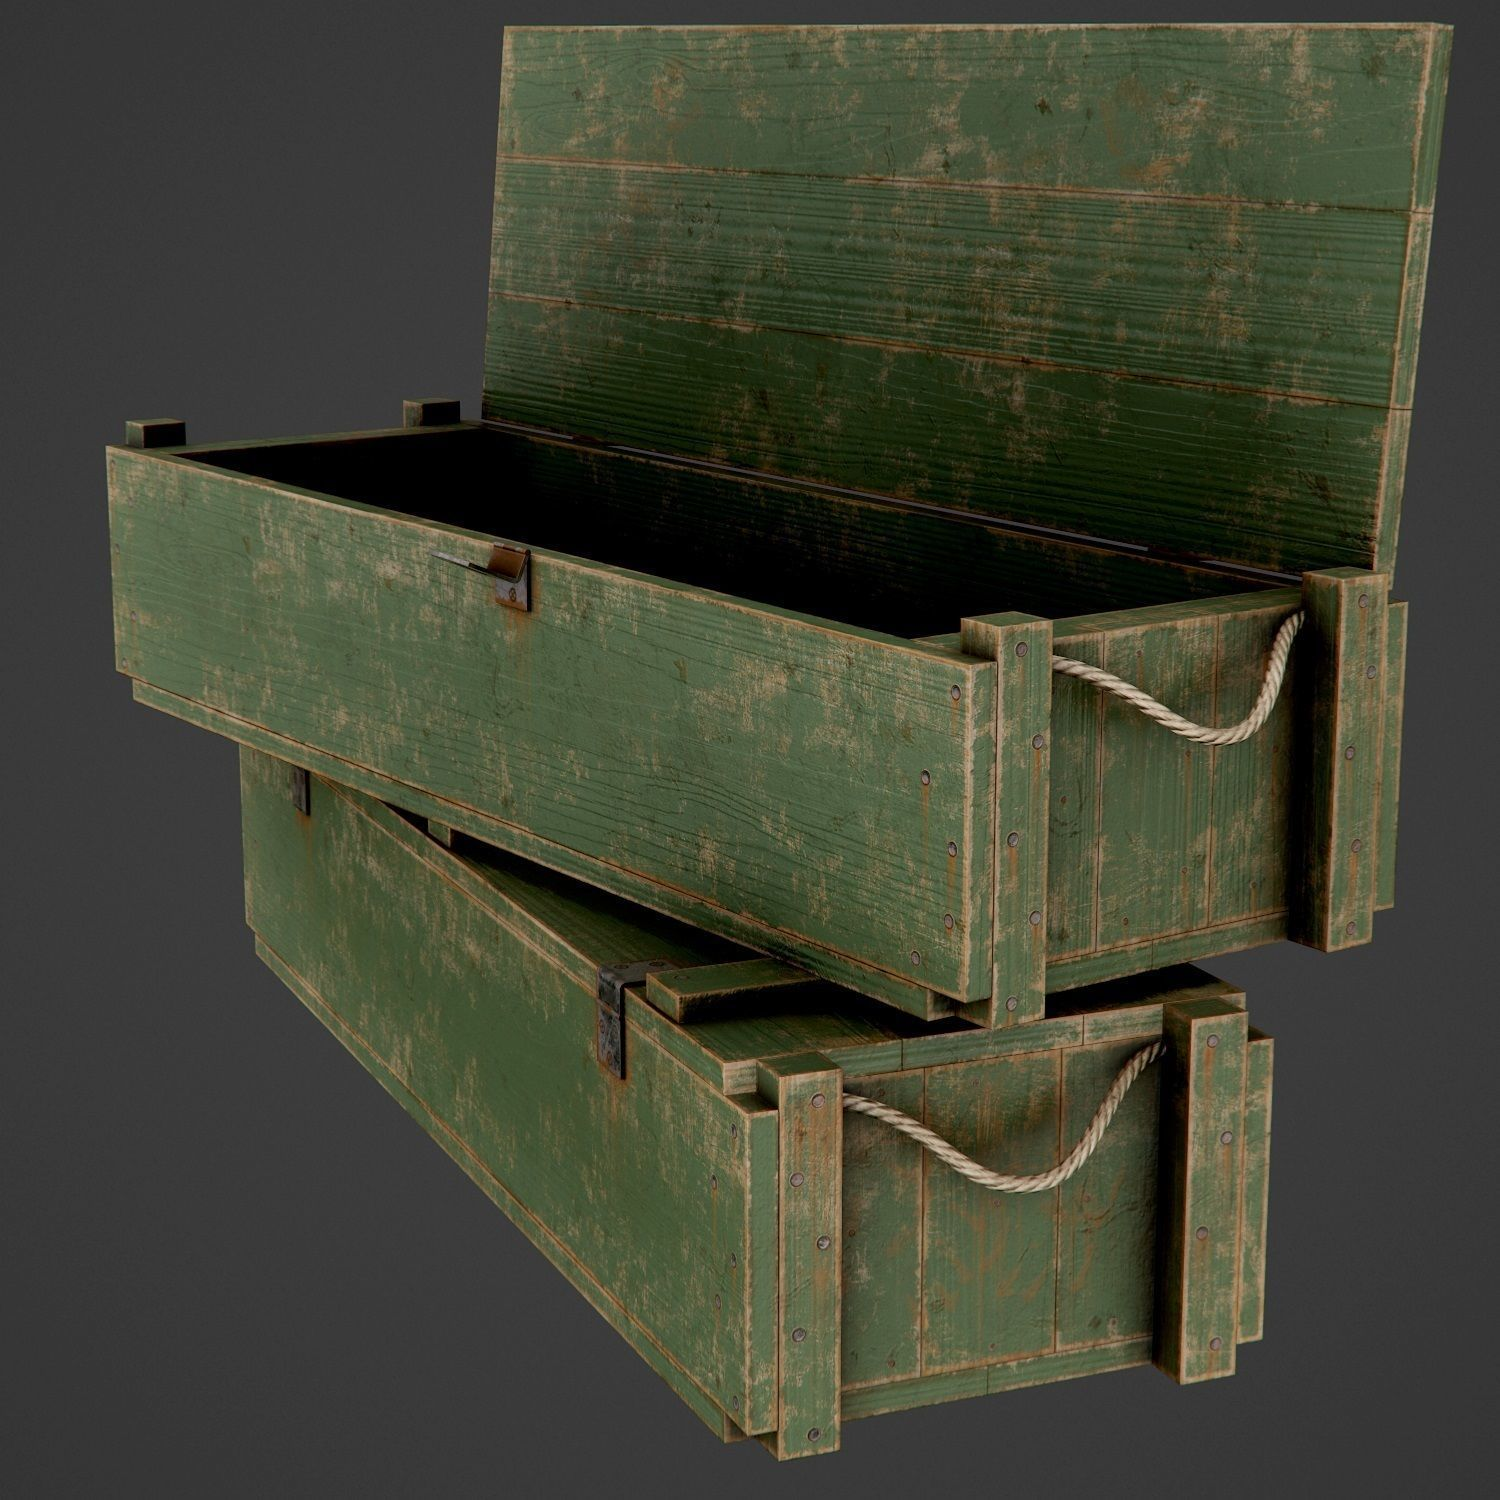 Painted Wooden Ammo Box - PBR Game-Ready